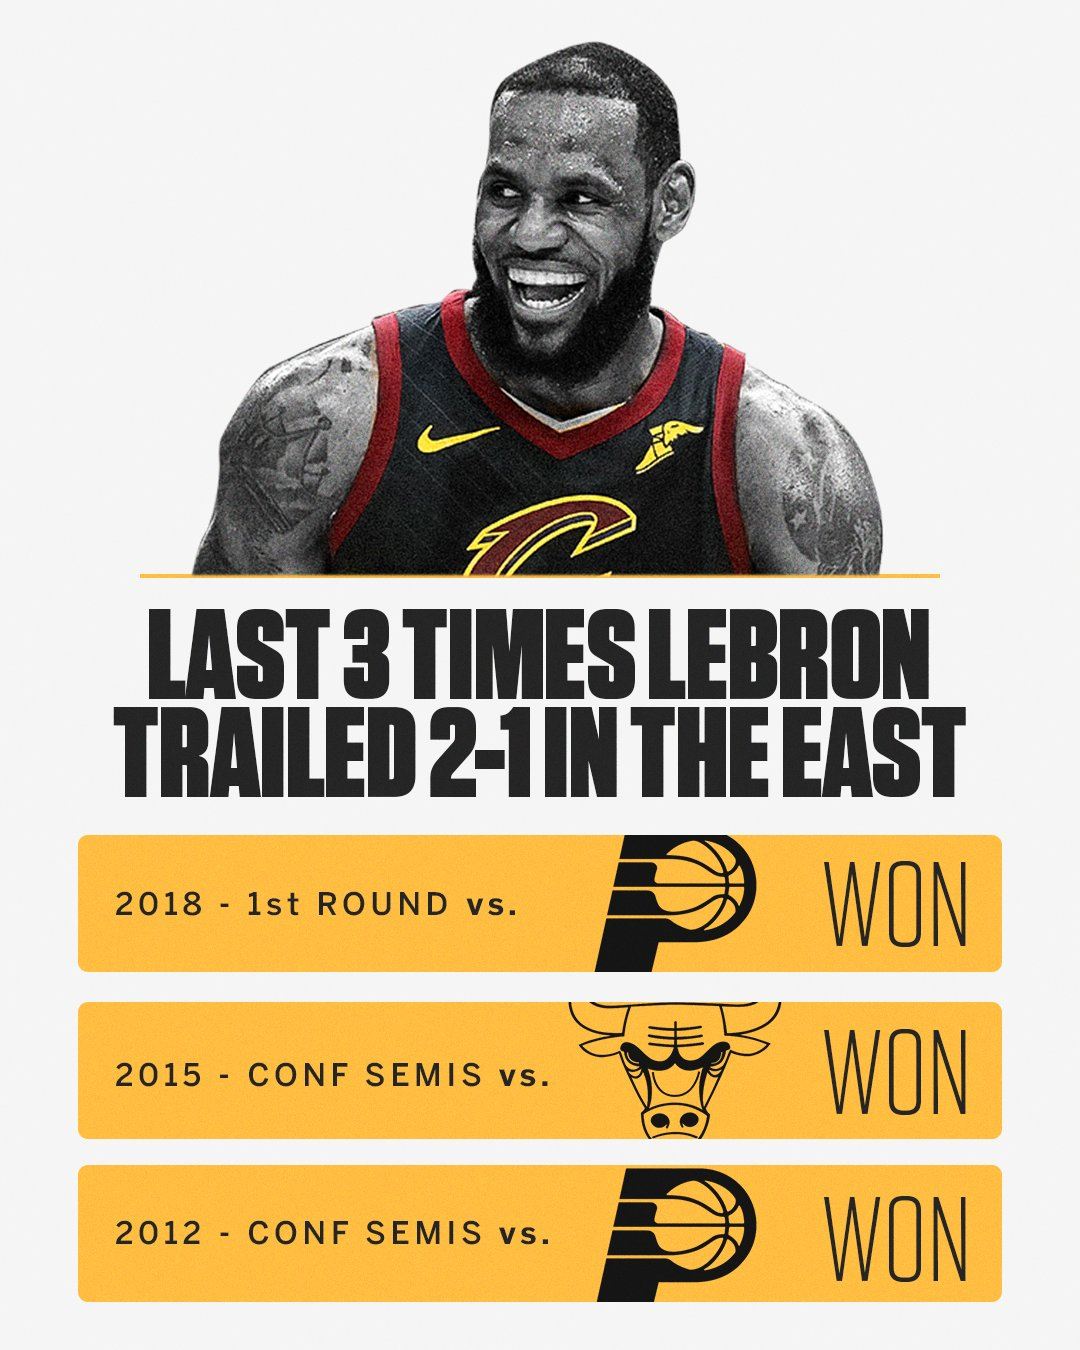 The last 3 times LeBron was down 2-1 in the East, he won the series. https://t.co/Ng5043dxKr